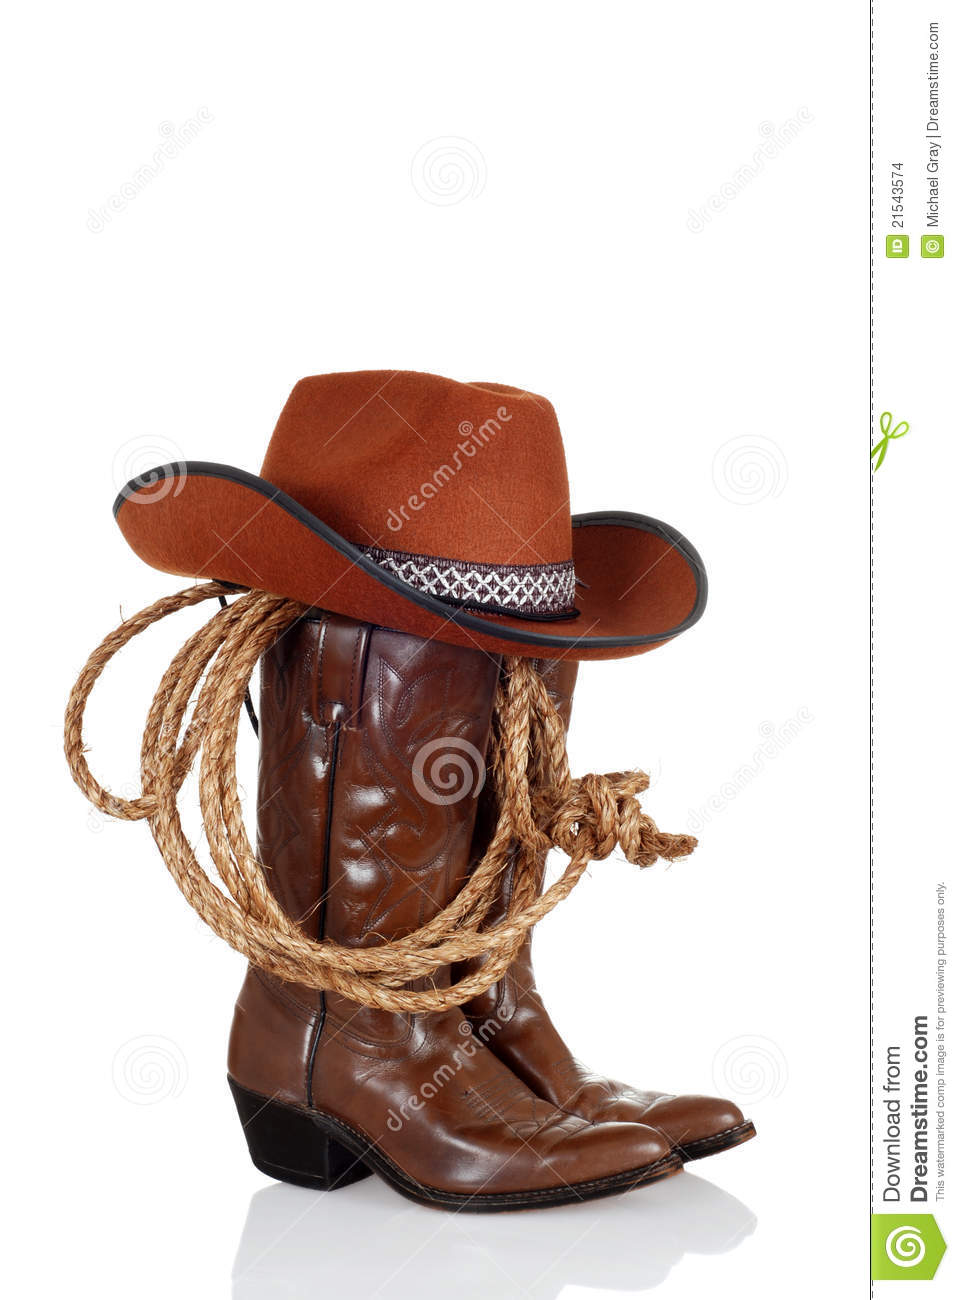 boots rope and hat - photo #31